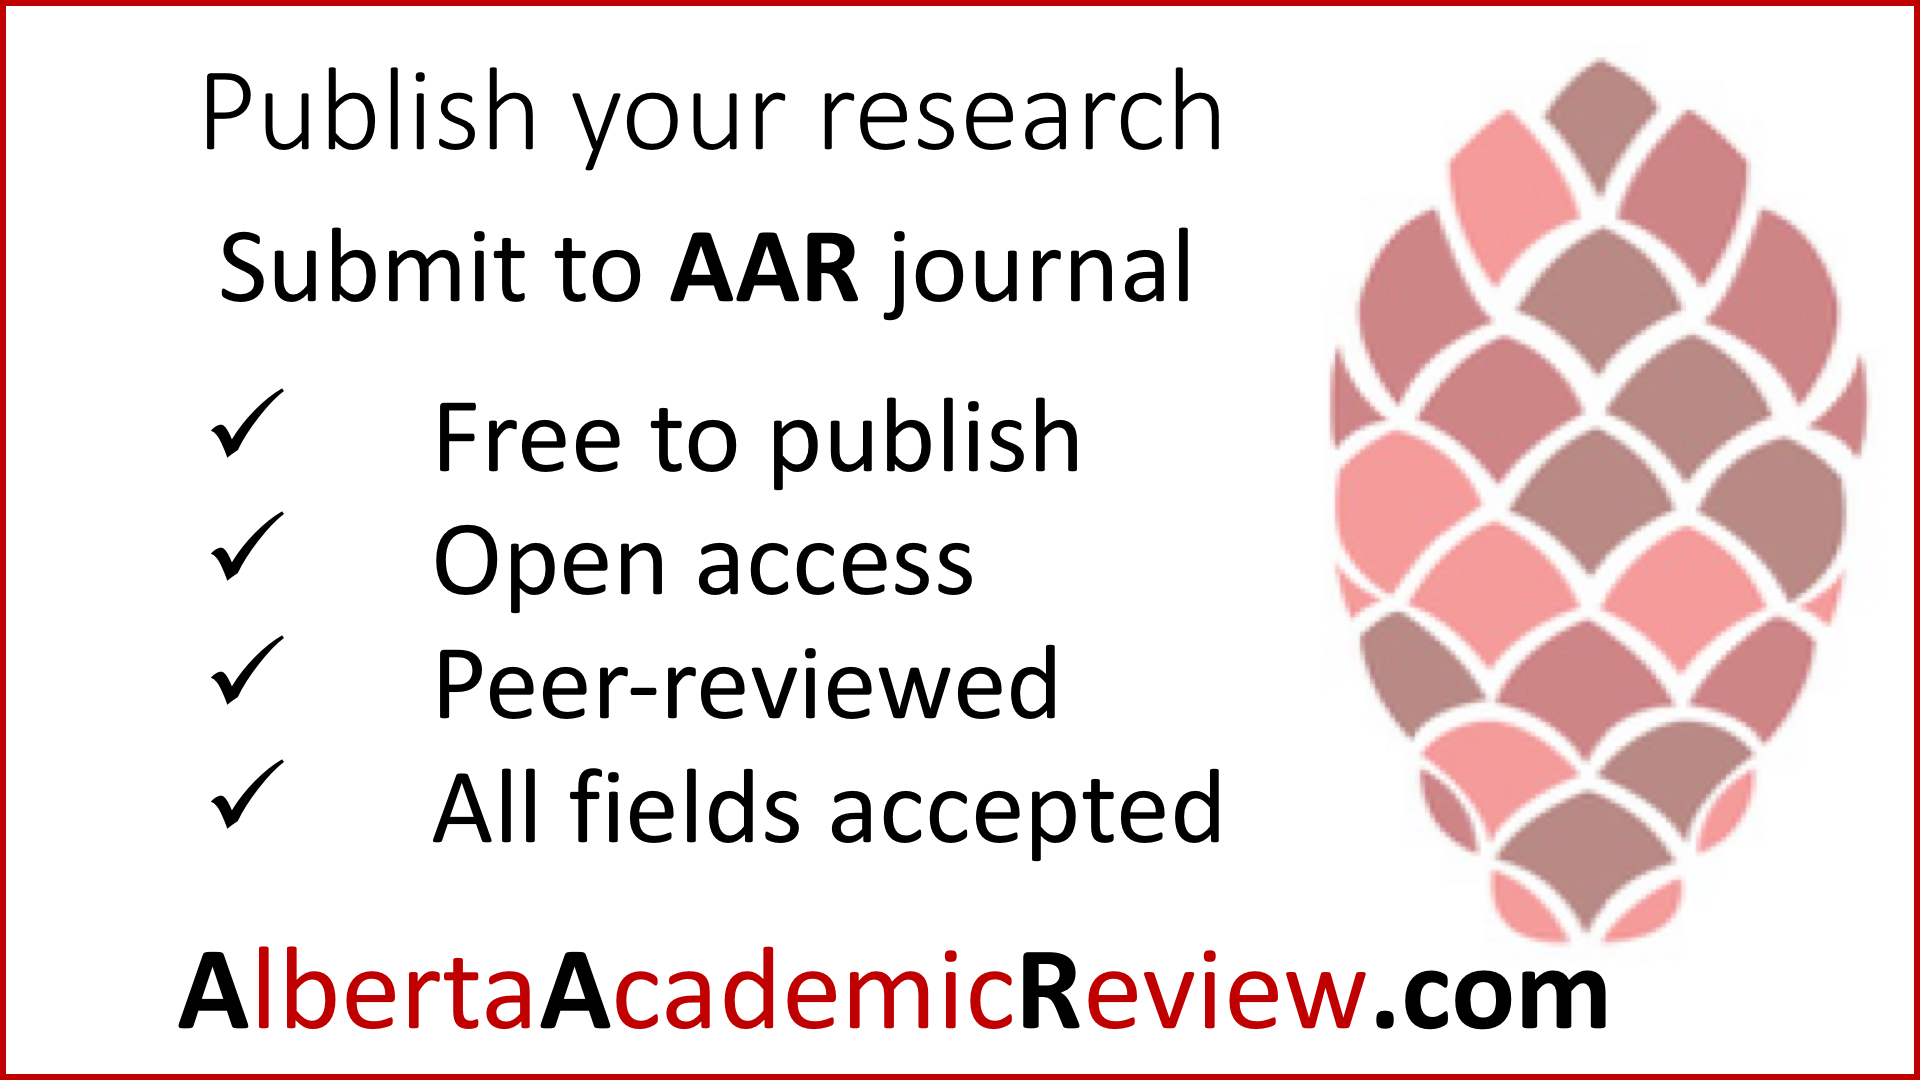 2020_03_01_Submit_to_AAR_journal_AARjournal1.png